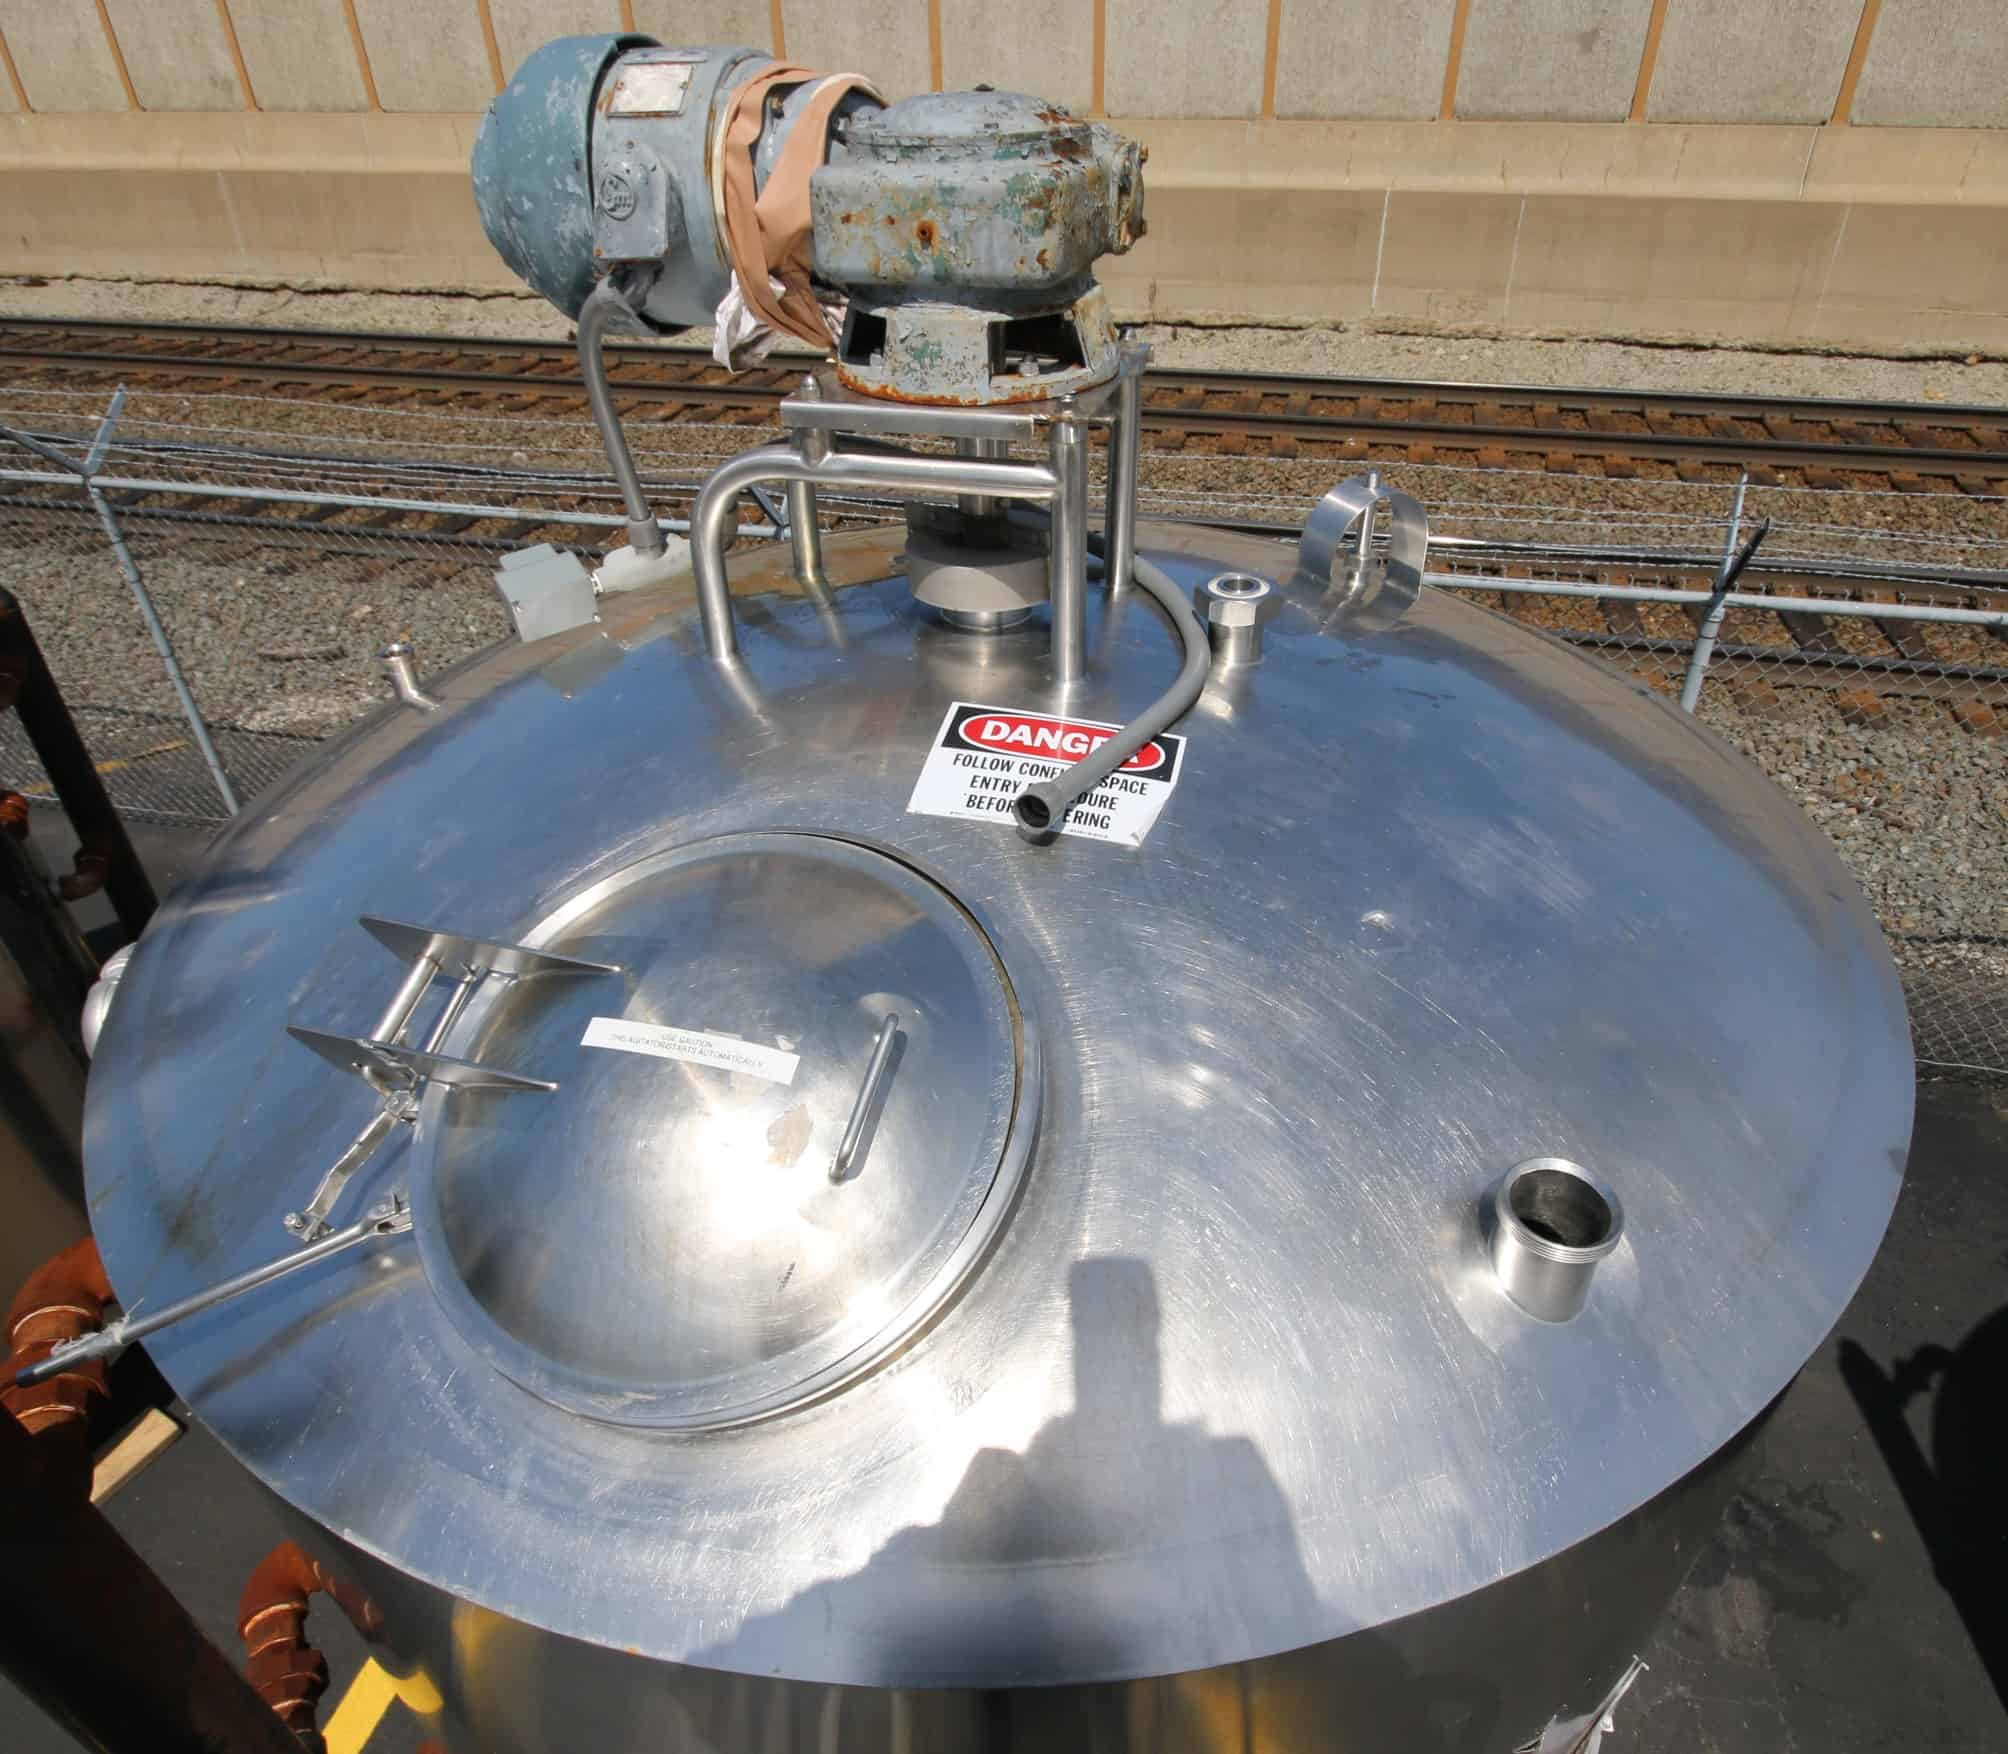 """Girton 1,500 Gal. Dome Top S/S Processor, Model PW-P-1500, S/N 69110613 with Bottom Sweep Agitator with 1.5 hp / 3/4 hp / 1220/600 RPM, Dual Sprayball, Baffle, Top Mounted Man Door, S/S Bottom, 230V 3 Phase, (Aprox. Overall Diam. 135"""" H x 88"""" W)"""